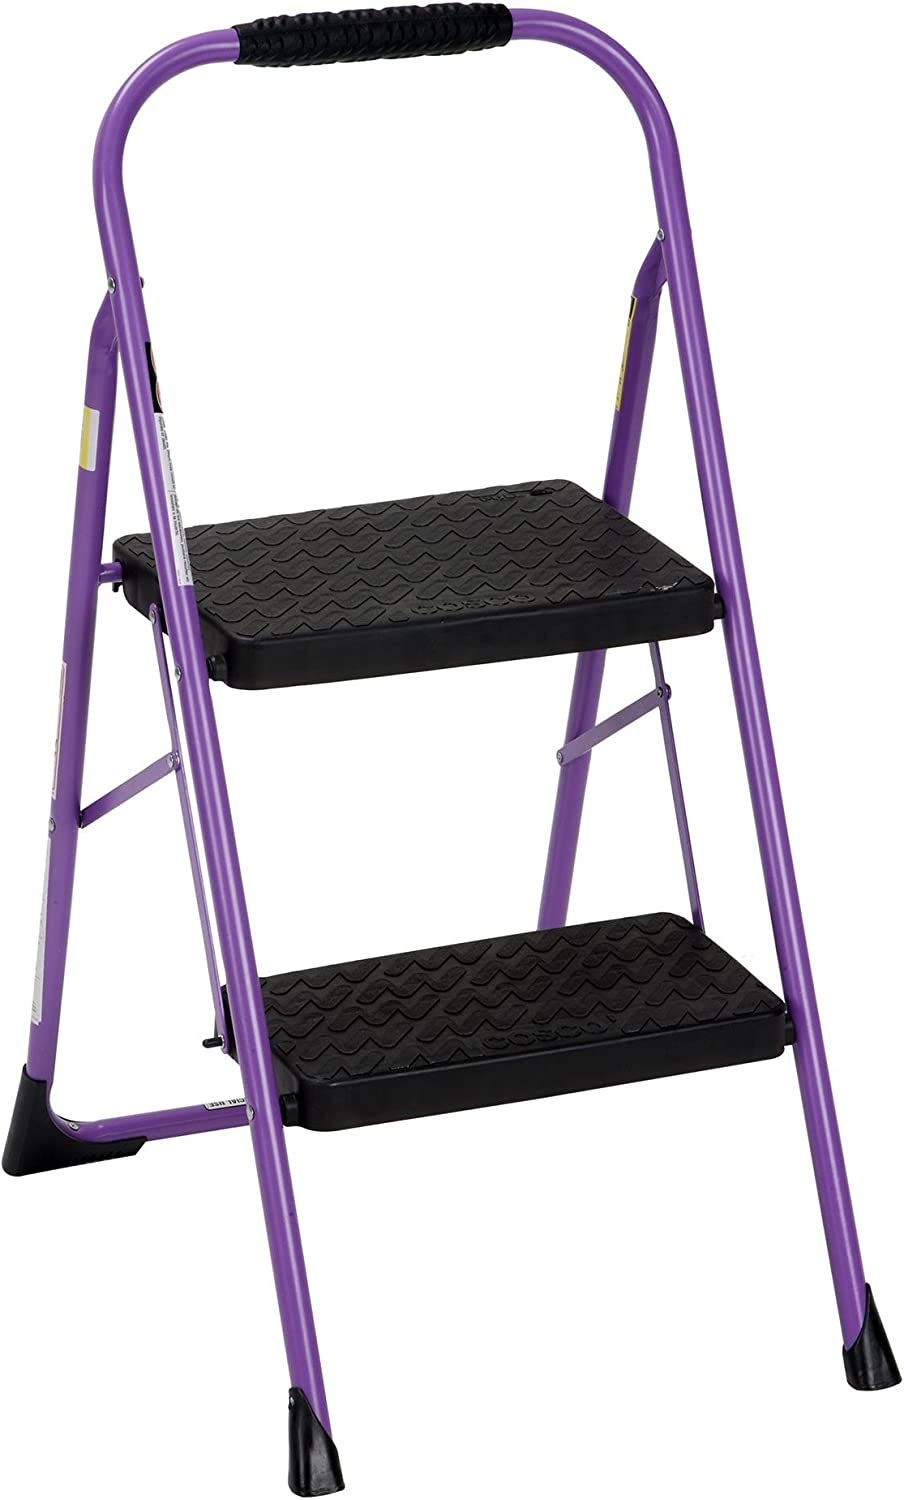 Cosco Two Step Big Step Folding Step Stool with Rubber Hand Grip, Purple